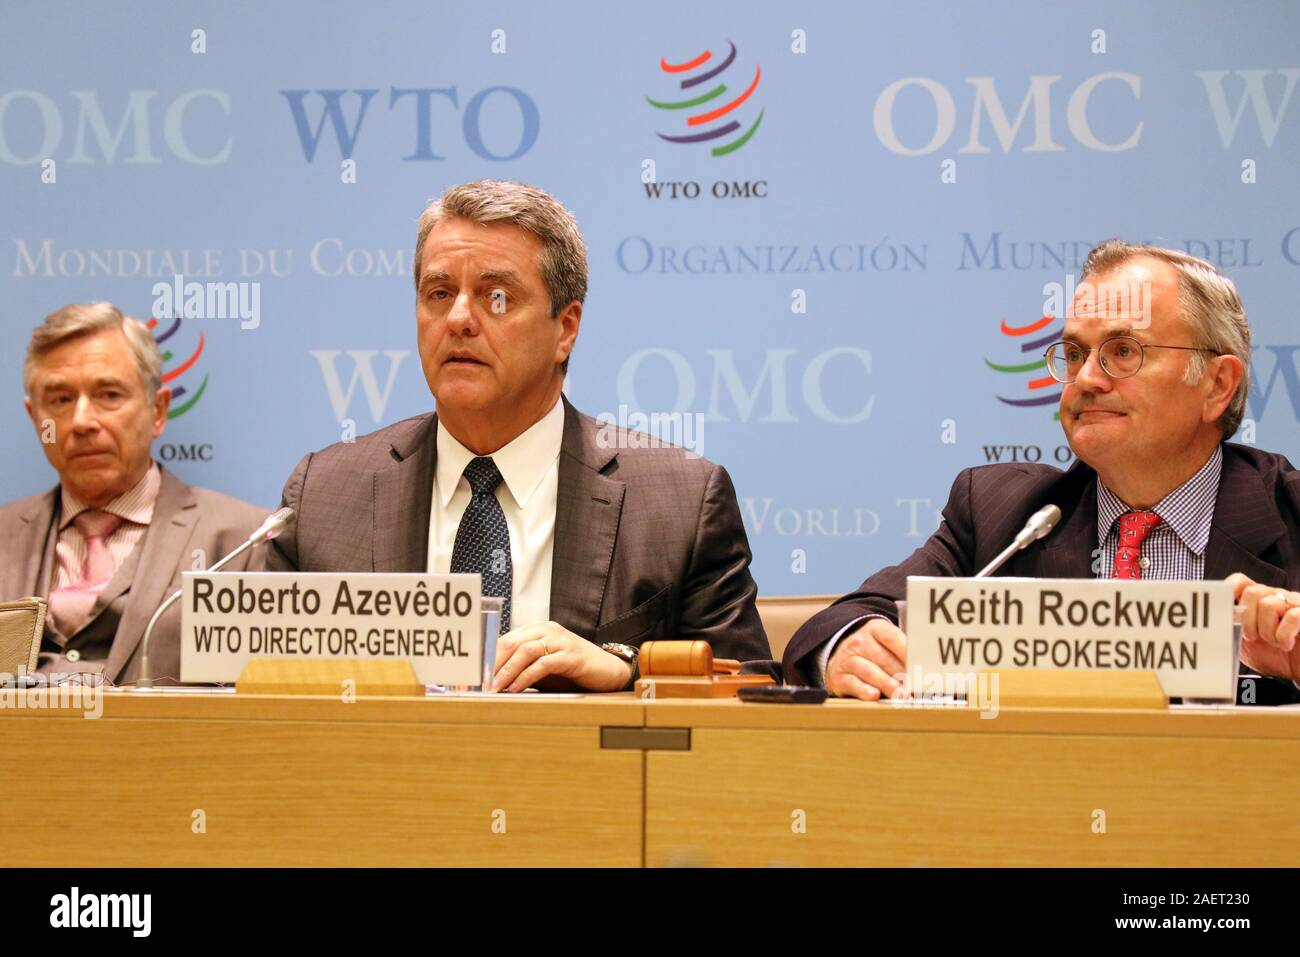 Geneva, Switzerland. 10th Dec, 2019. World Trade Organization (WTO) Director-General Roberto Azevedo (C) speaks at a press conference after a two-day meeting of the WTO's General Council in Geneva, Switzerland, on Dec. 10, 2019. Roberto Azevedo said here Tuesday that as of Wednesday, the Appellate Body would be unable to hear new appeals. Credit: Peter Kenny/Xinhua/Alamy Live News Stock Photo